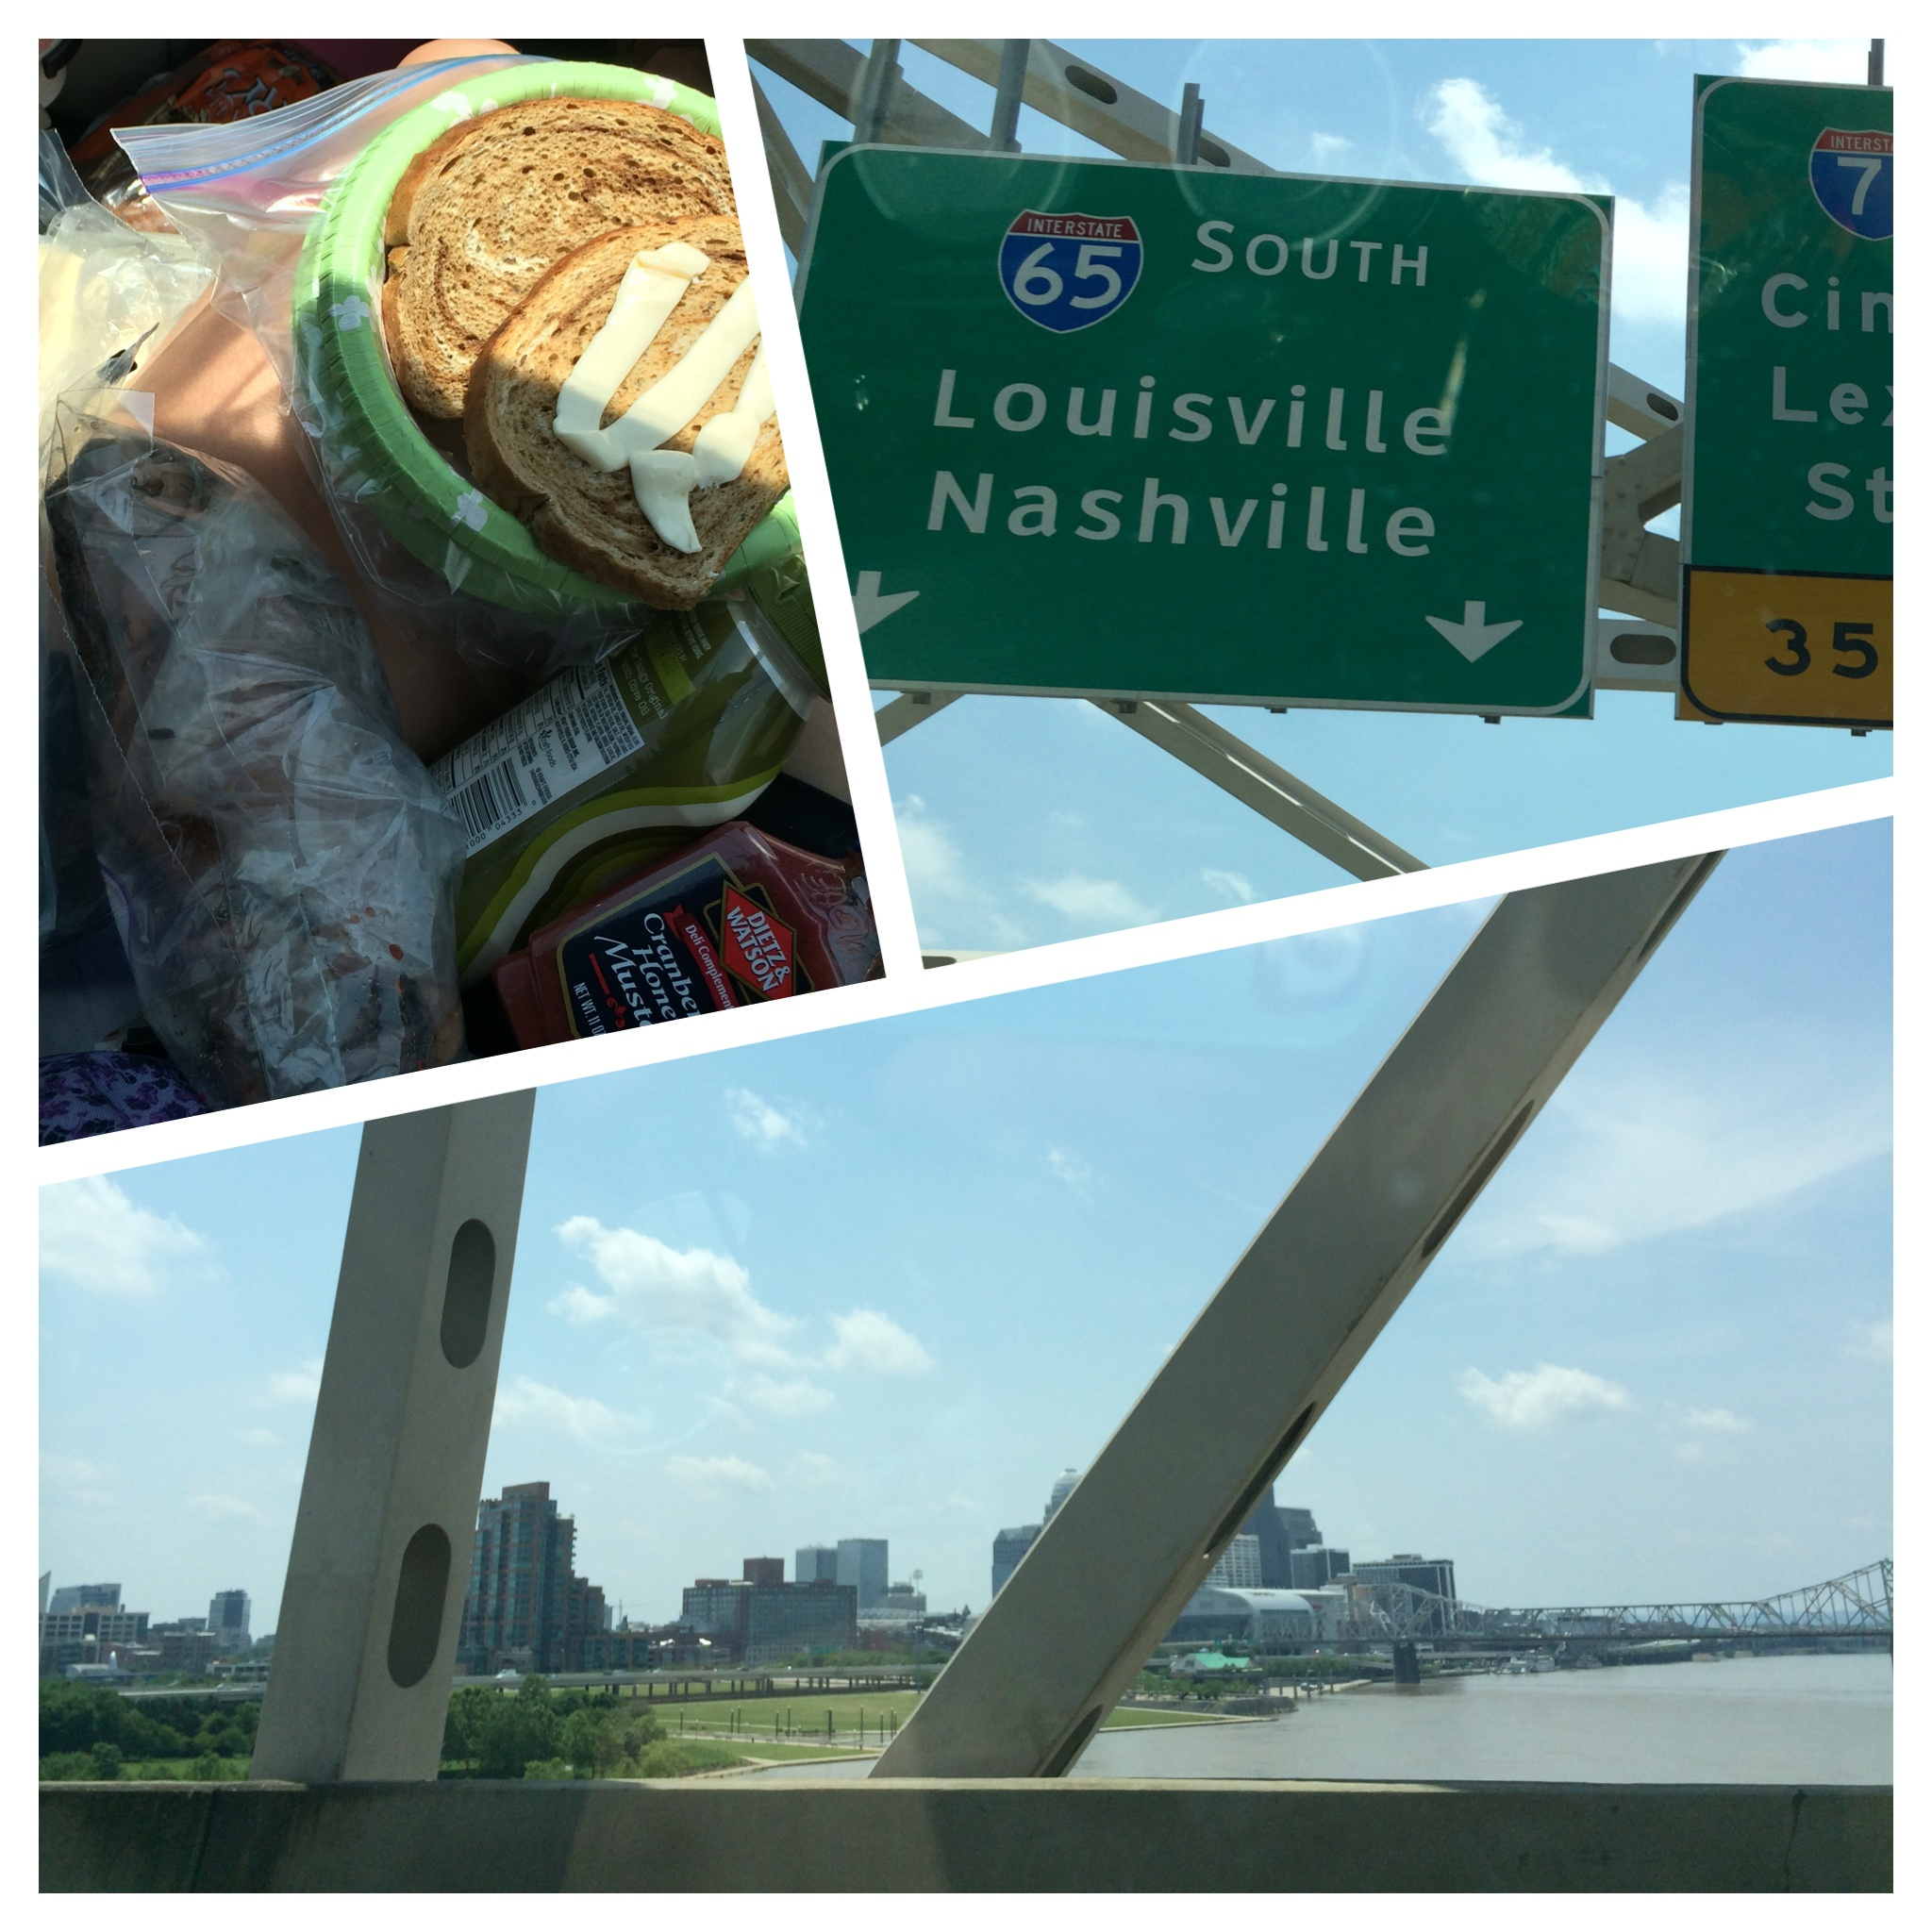 Lunchtime in the car, headed towards Louisville!